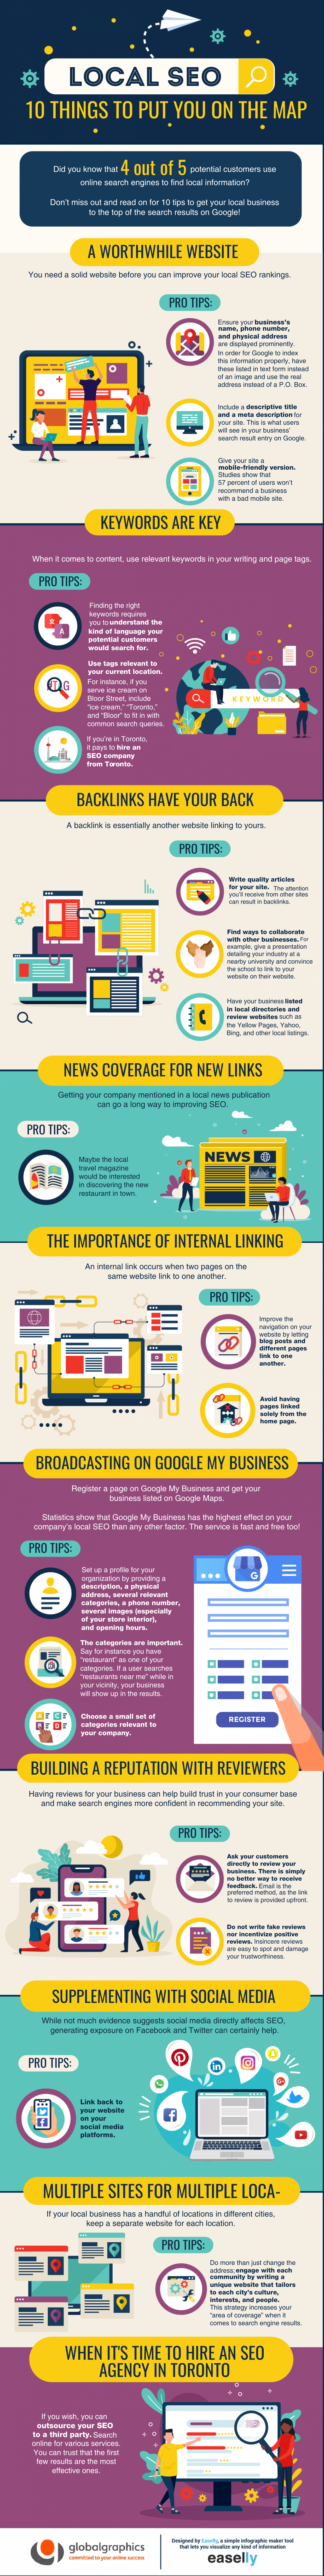 Local SEO infographic template